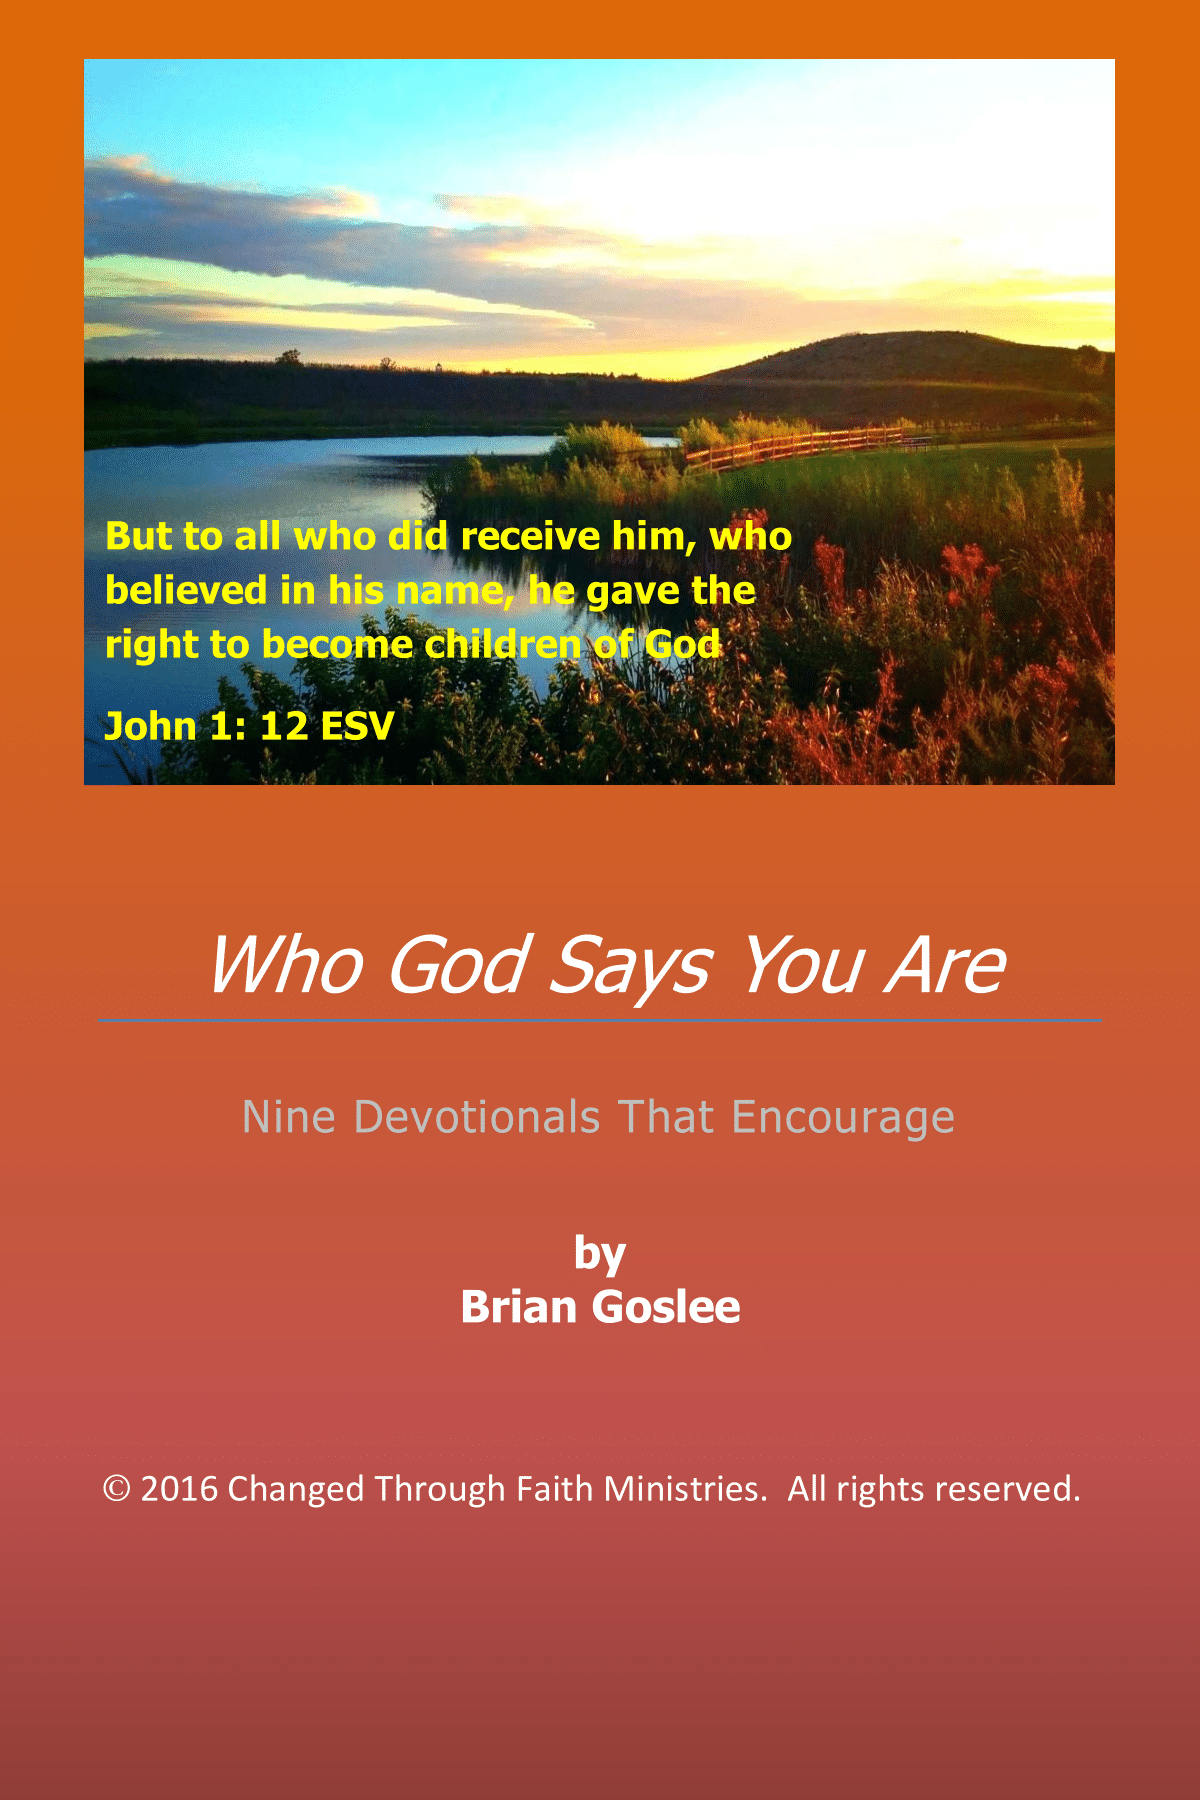 Who God Says You Are